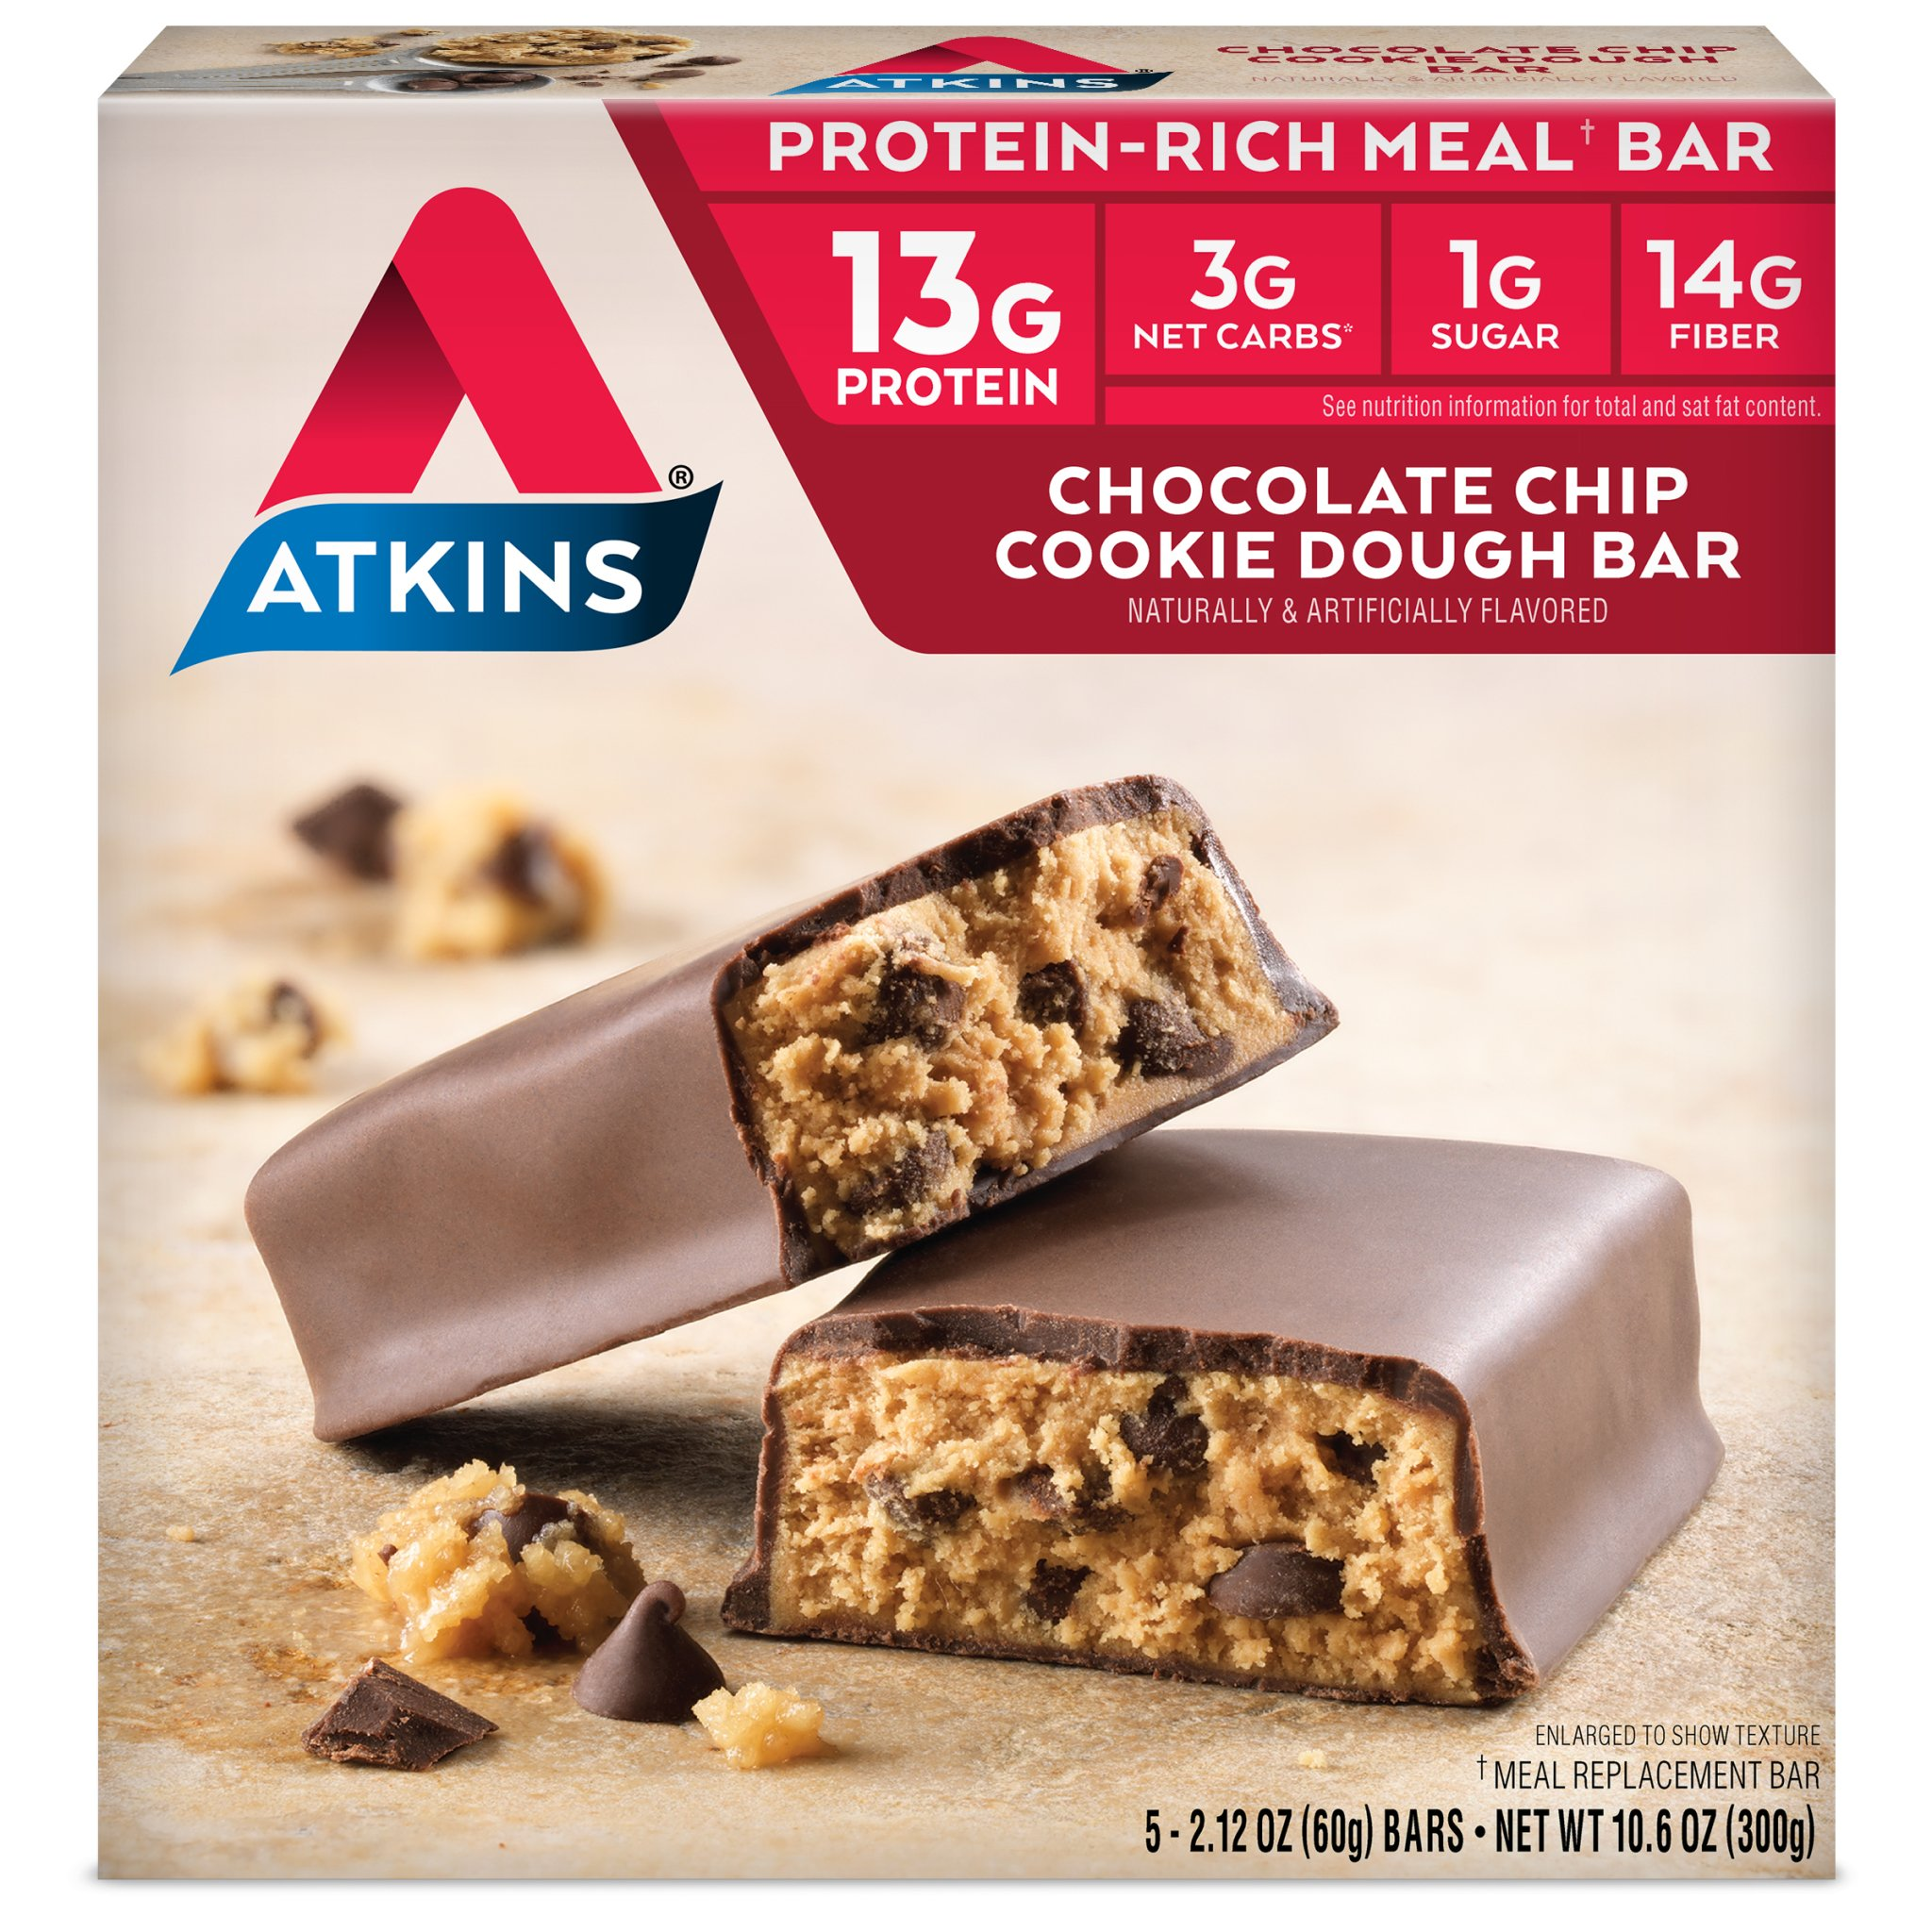 Atkins Protein-Rich Meal Bar, Chocolate Chip Cookie Dough, Keto Friendly, 5 Count (Pack of 6) by Atkins